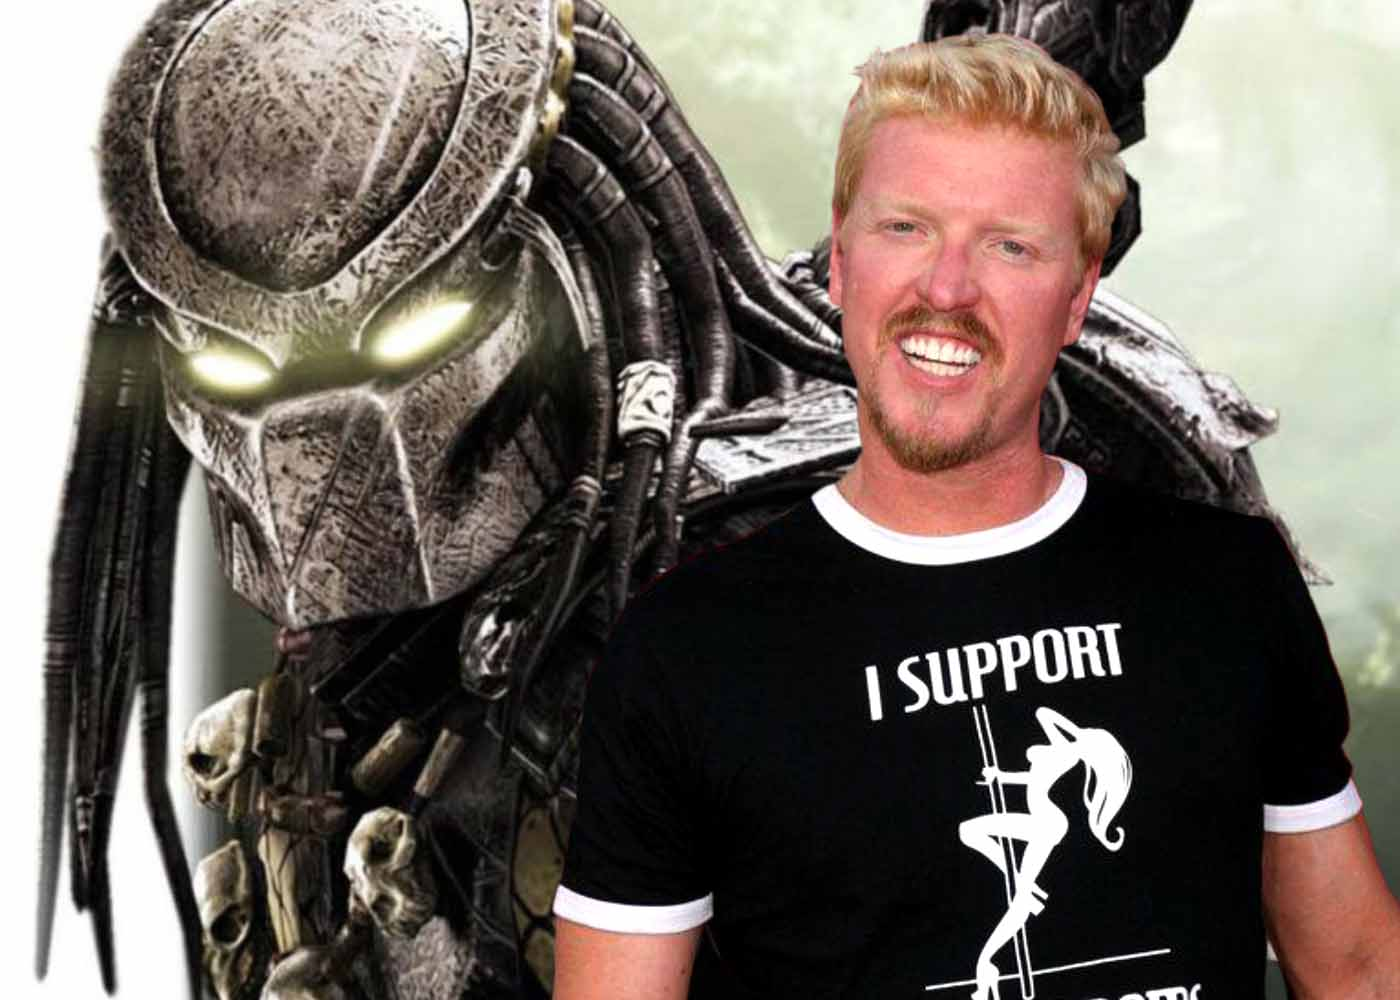 Jake Busey's Character Will Connect The Predator Directly to Predator 2